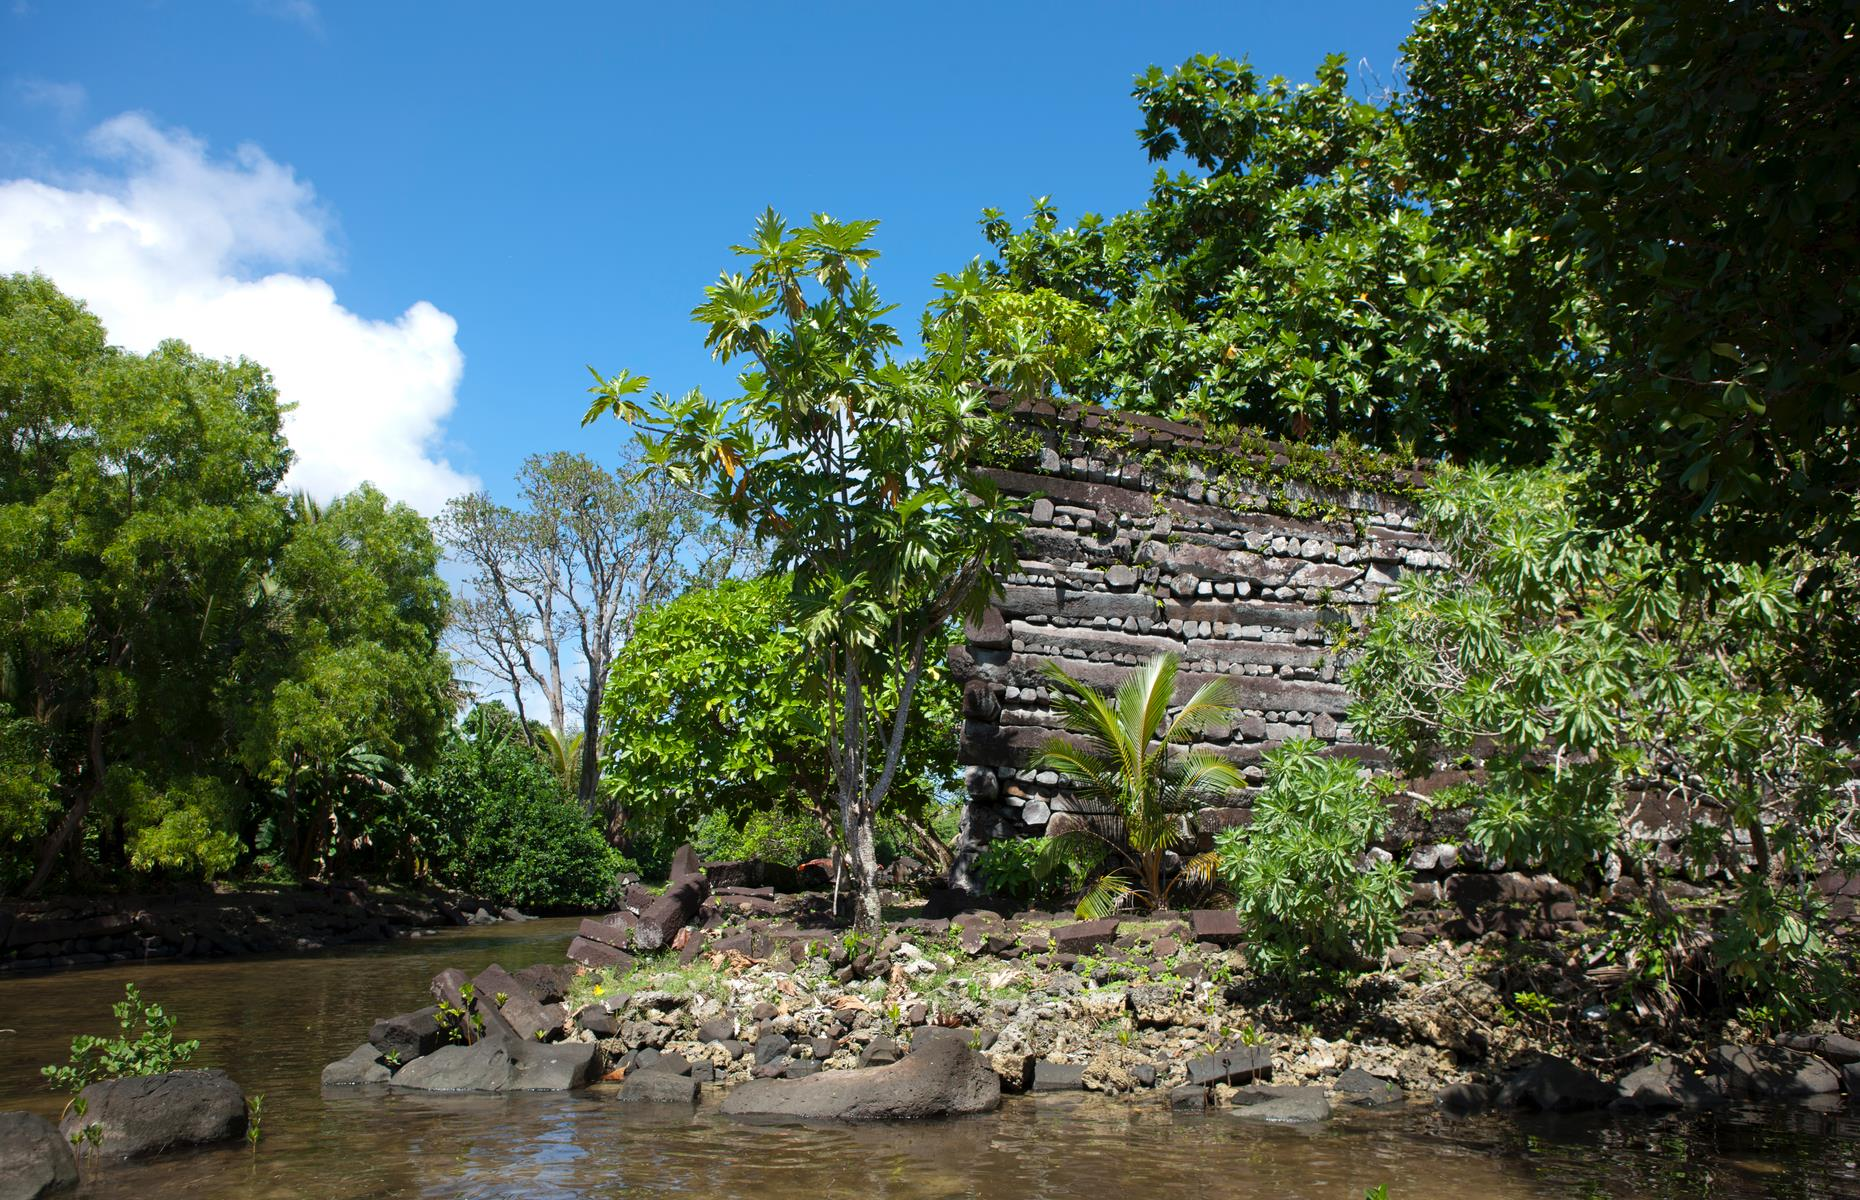 "Slide 31 of 53: More than 100 islets off the coast of Pohnpei, which house the ruins of stone palaces, temples and tombs, make up the ceremonial site of Nan Madol in Eastern Micronesia. Dating from AD 1200 to 1500, they were the ceremonial center of the Saudeleur dynasty. According to UNESCO, they reveal a great deal about ""the complex social and religious practices of the Pacific island societies of the period"". In 2016, Nan Madol was listed ""in danger"" due to mangrove overgrowth, storm surge and stonework collapse. Now take a look at the world's most mysterious stone circles."